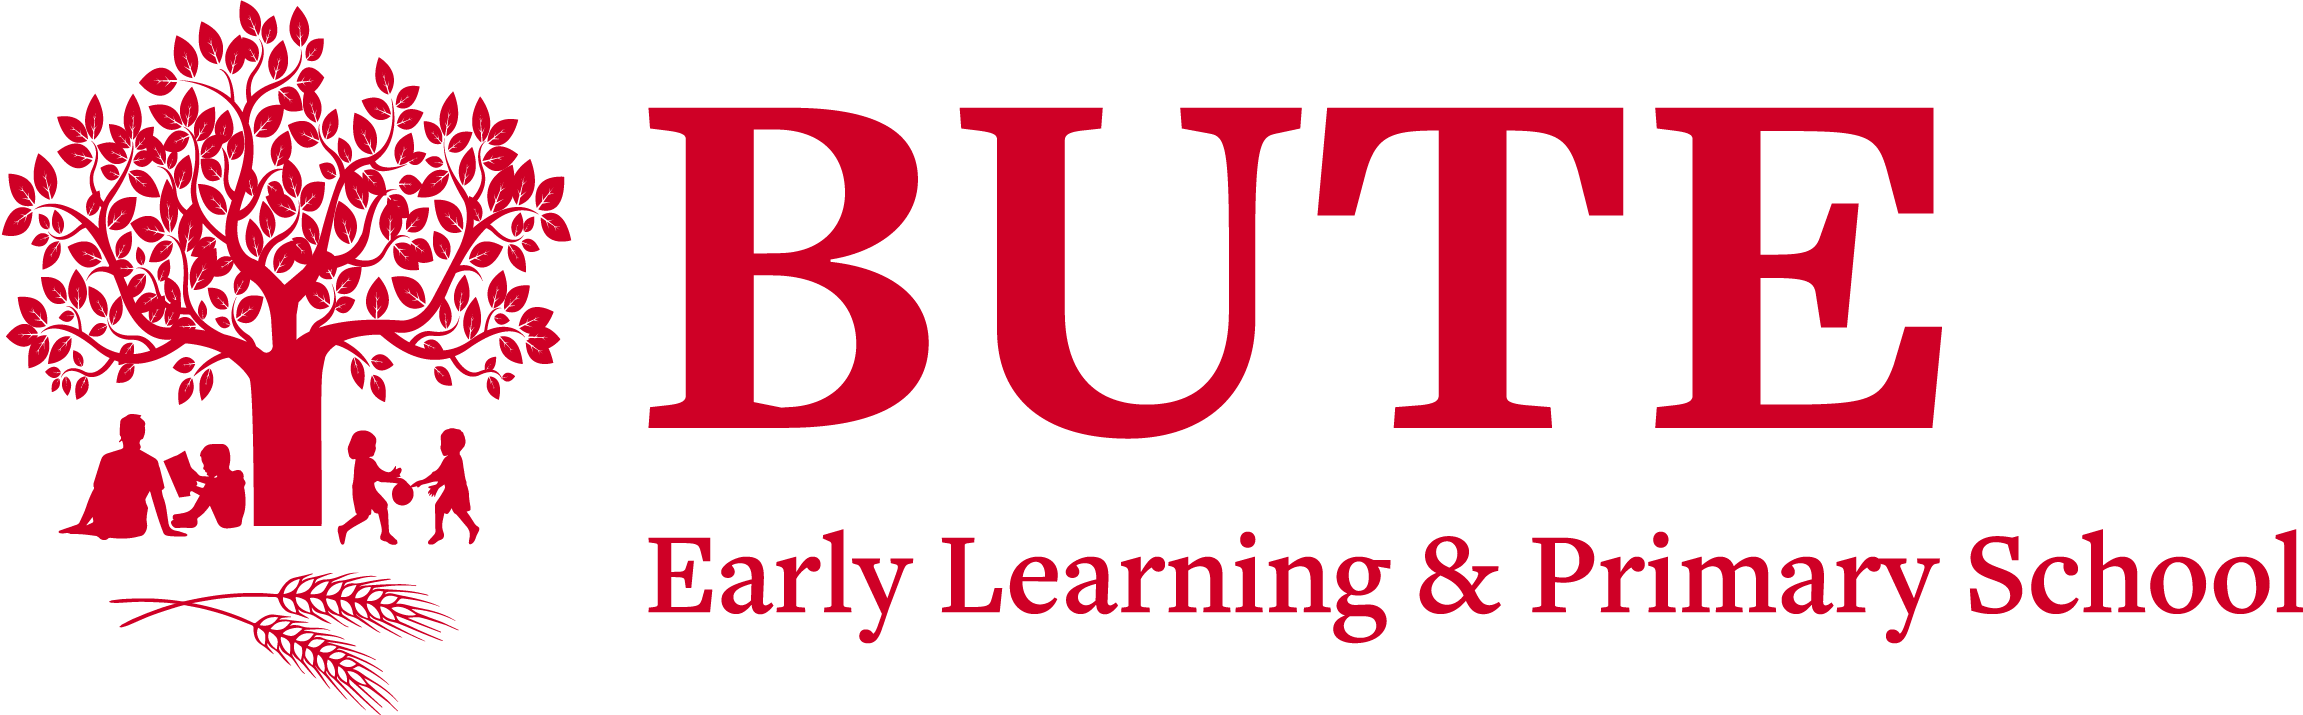 Bute Early Learning & Primary School